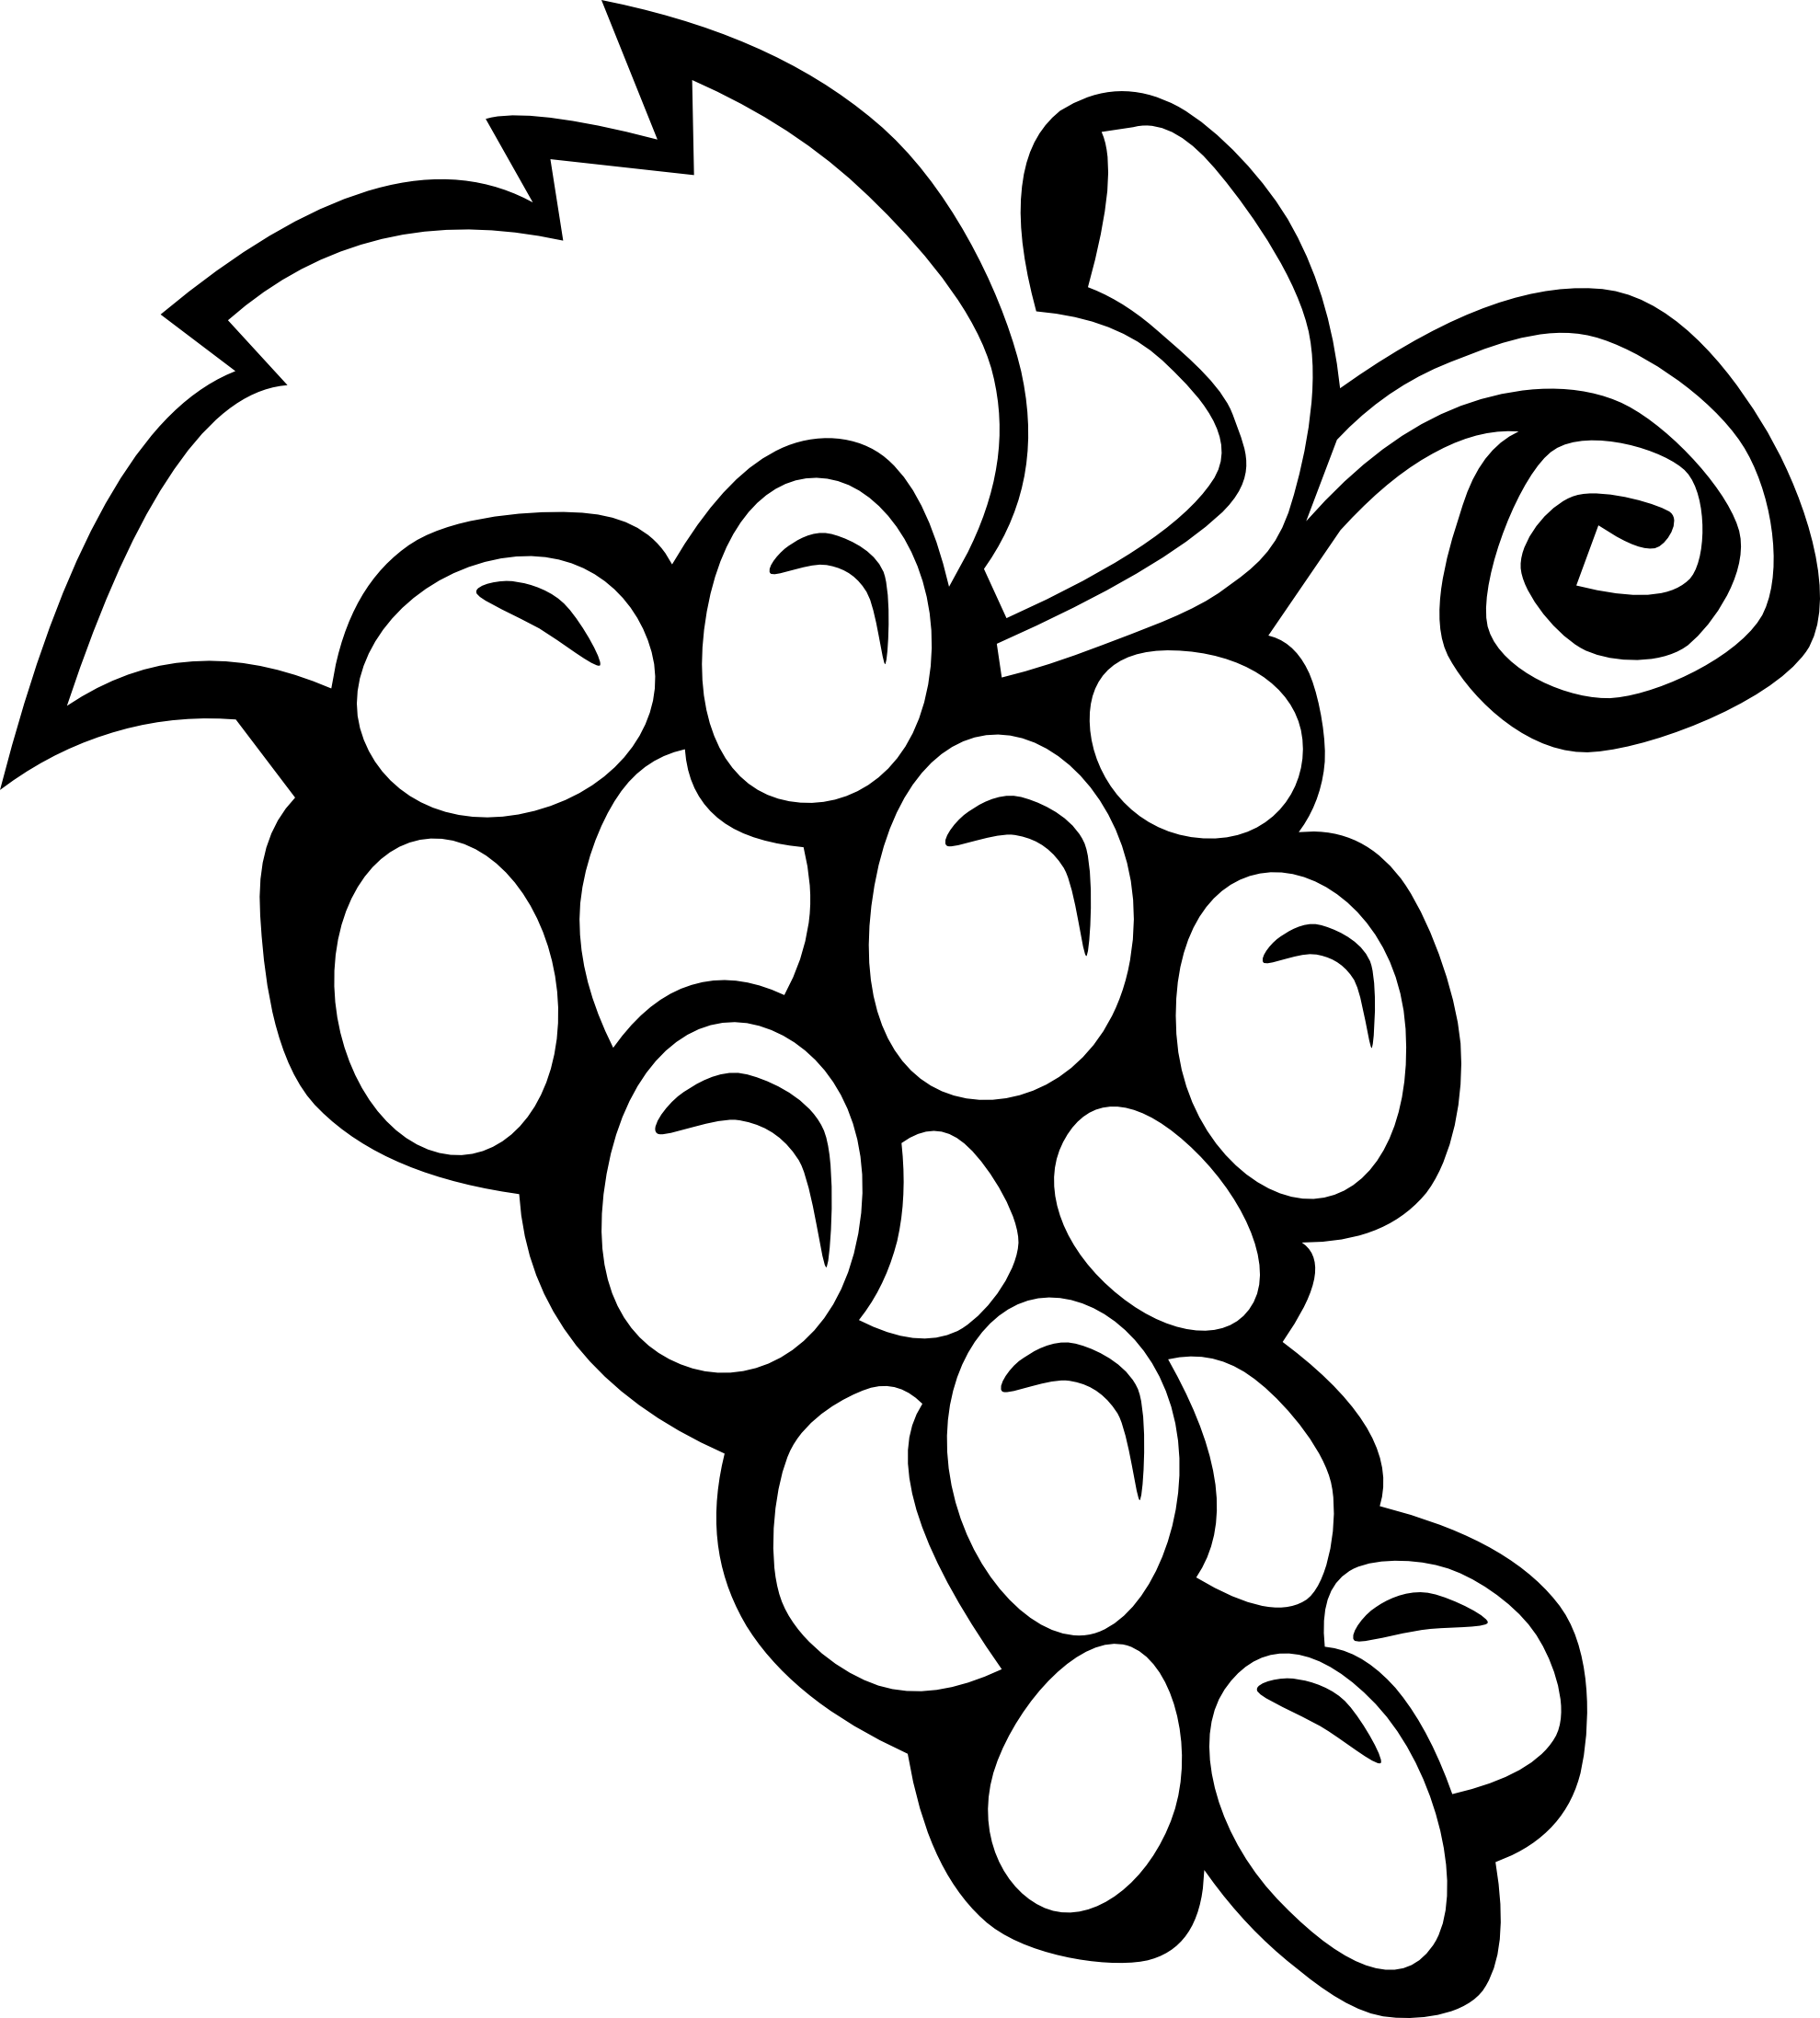 Vegetable black and white clipart - Fruit And Veg PNG Black And White